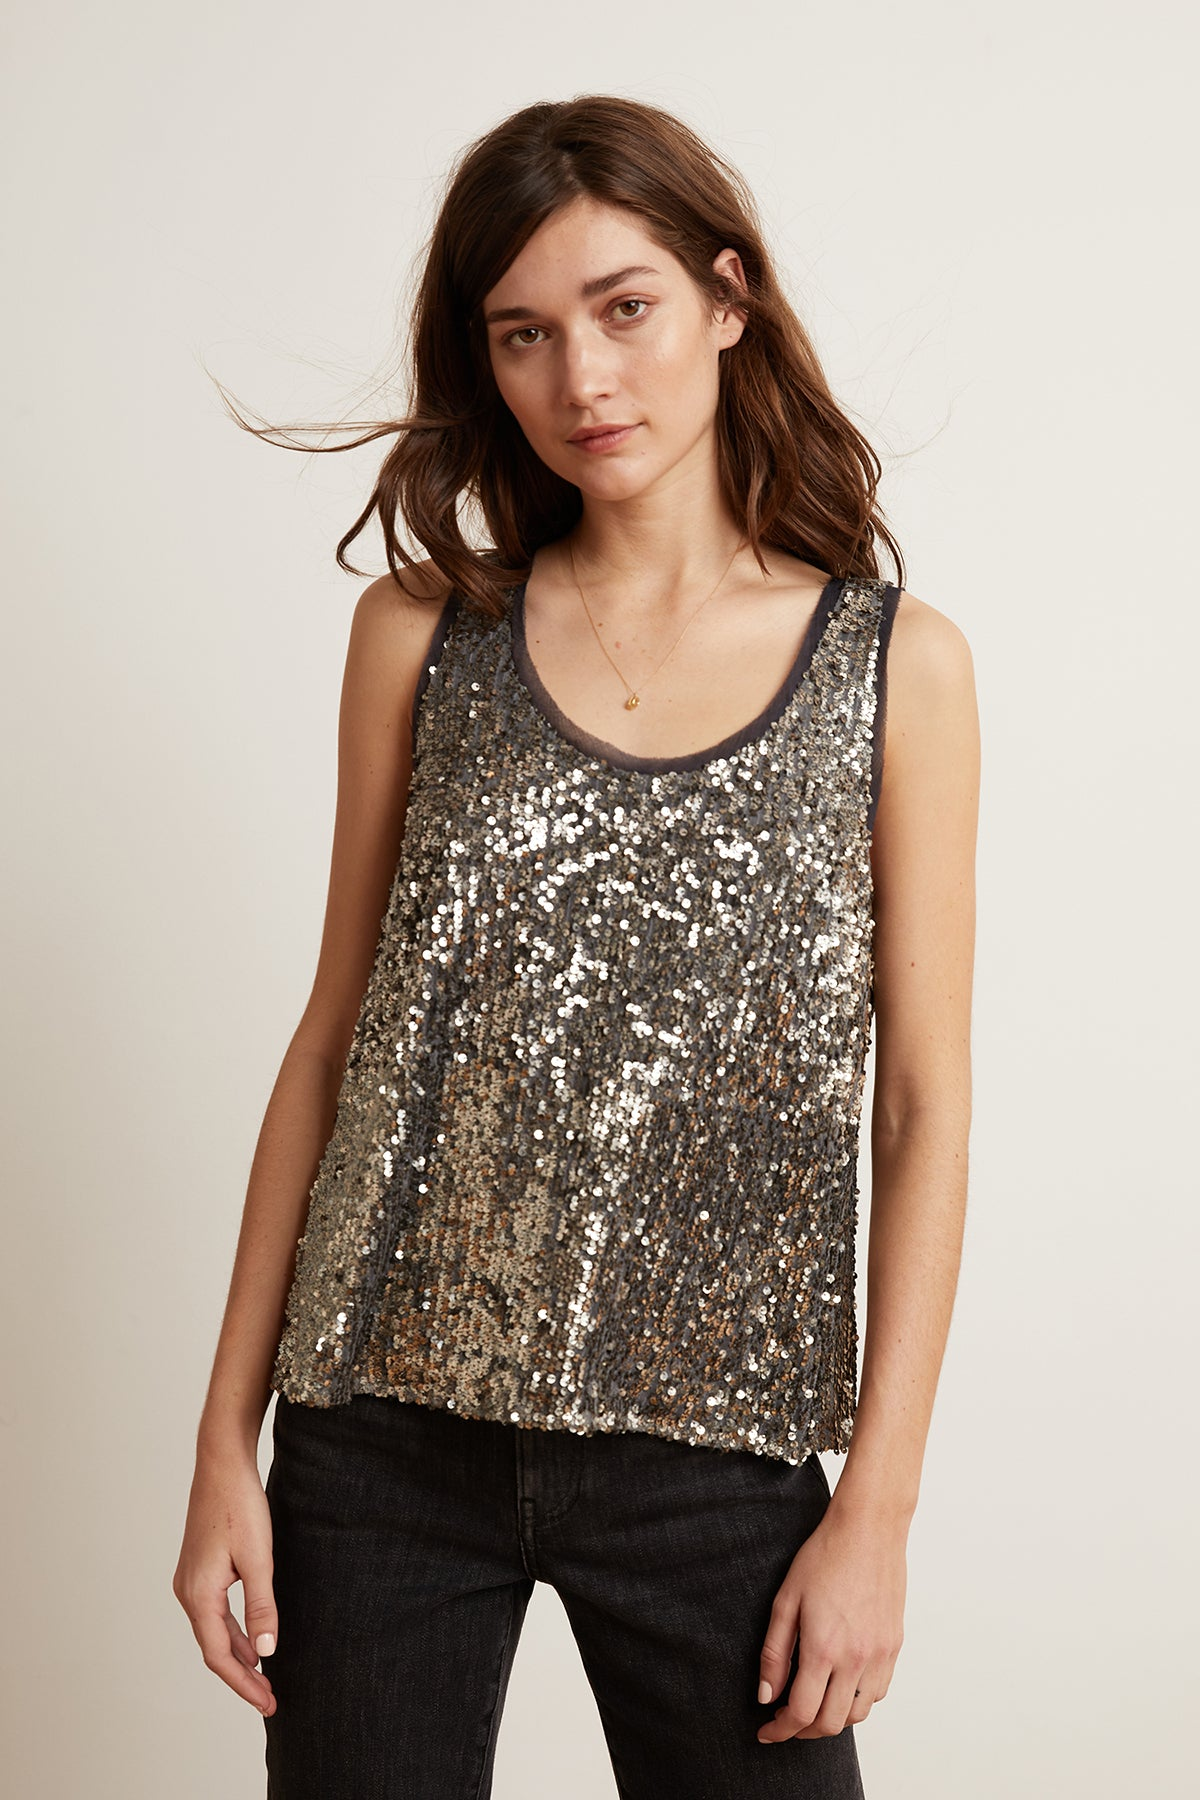 LEYLA ANTIQUE SEQUINS SLEEVELESS TOP